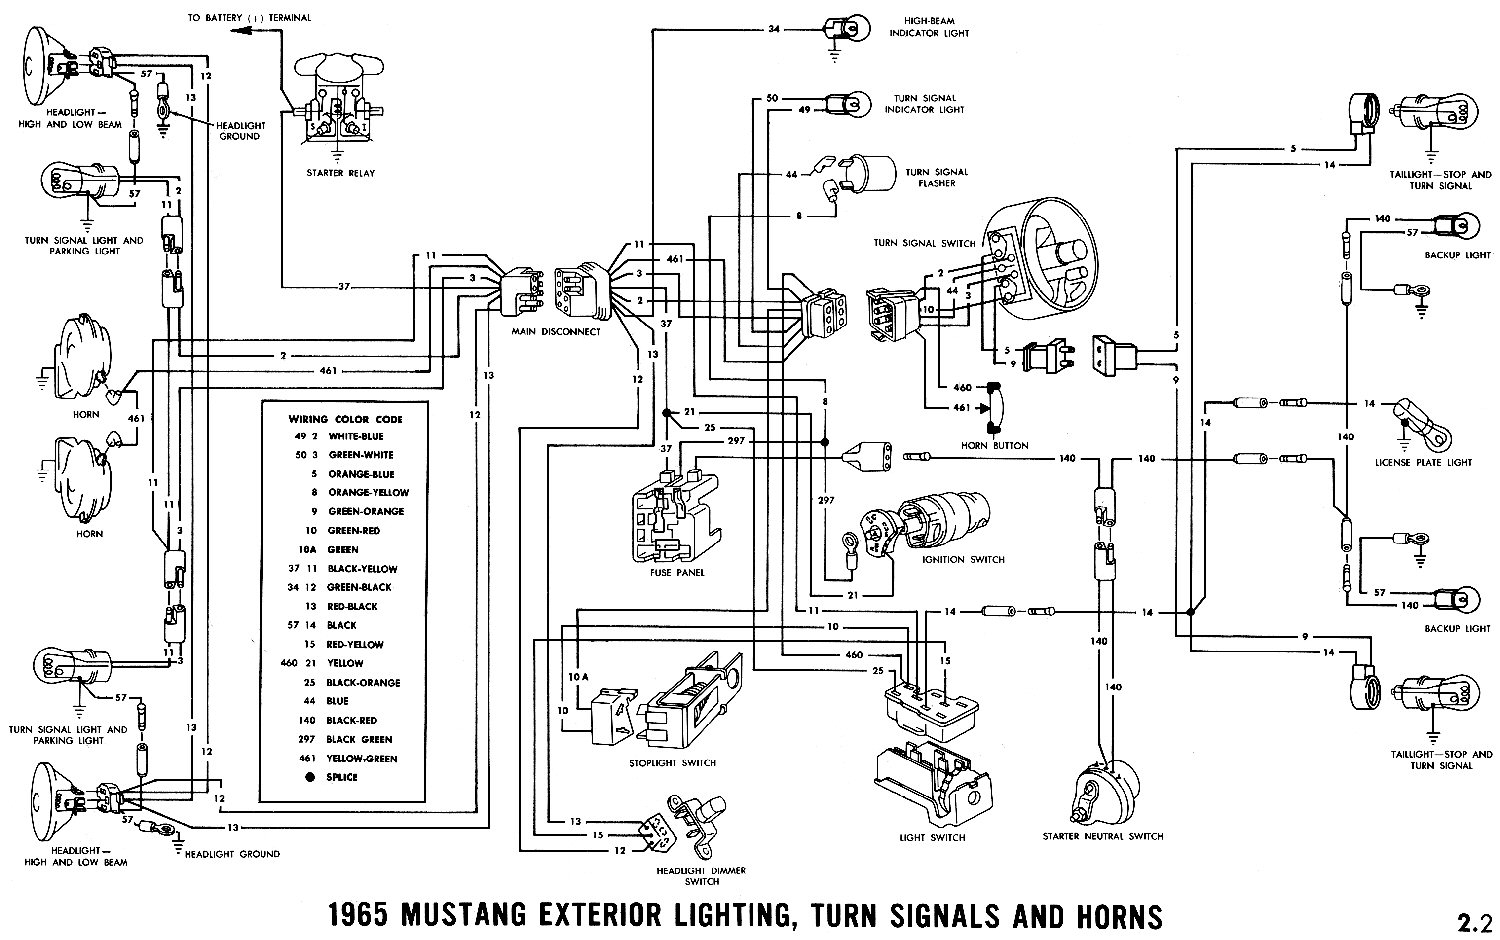 1965 mustang ignition wiring diagram collection